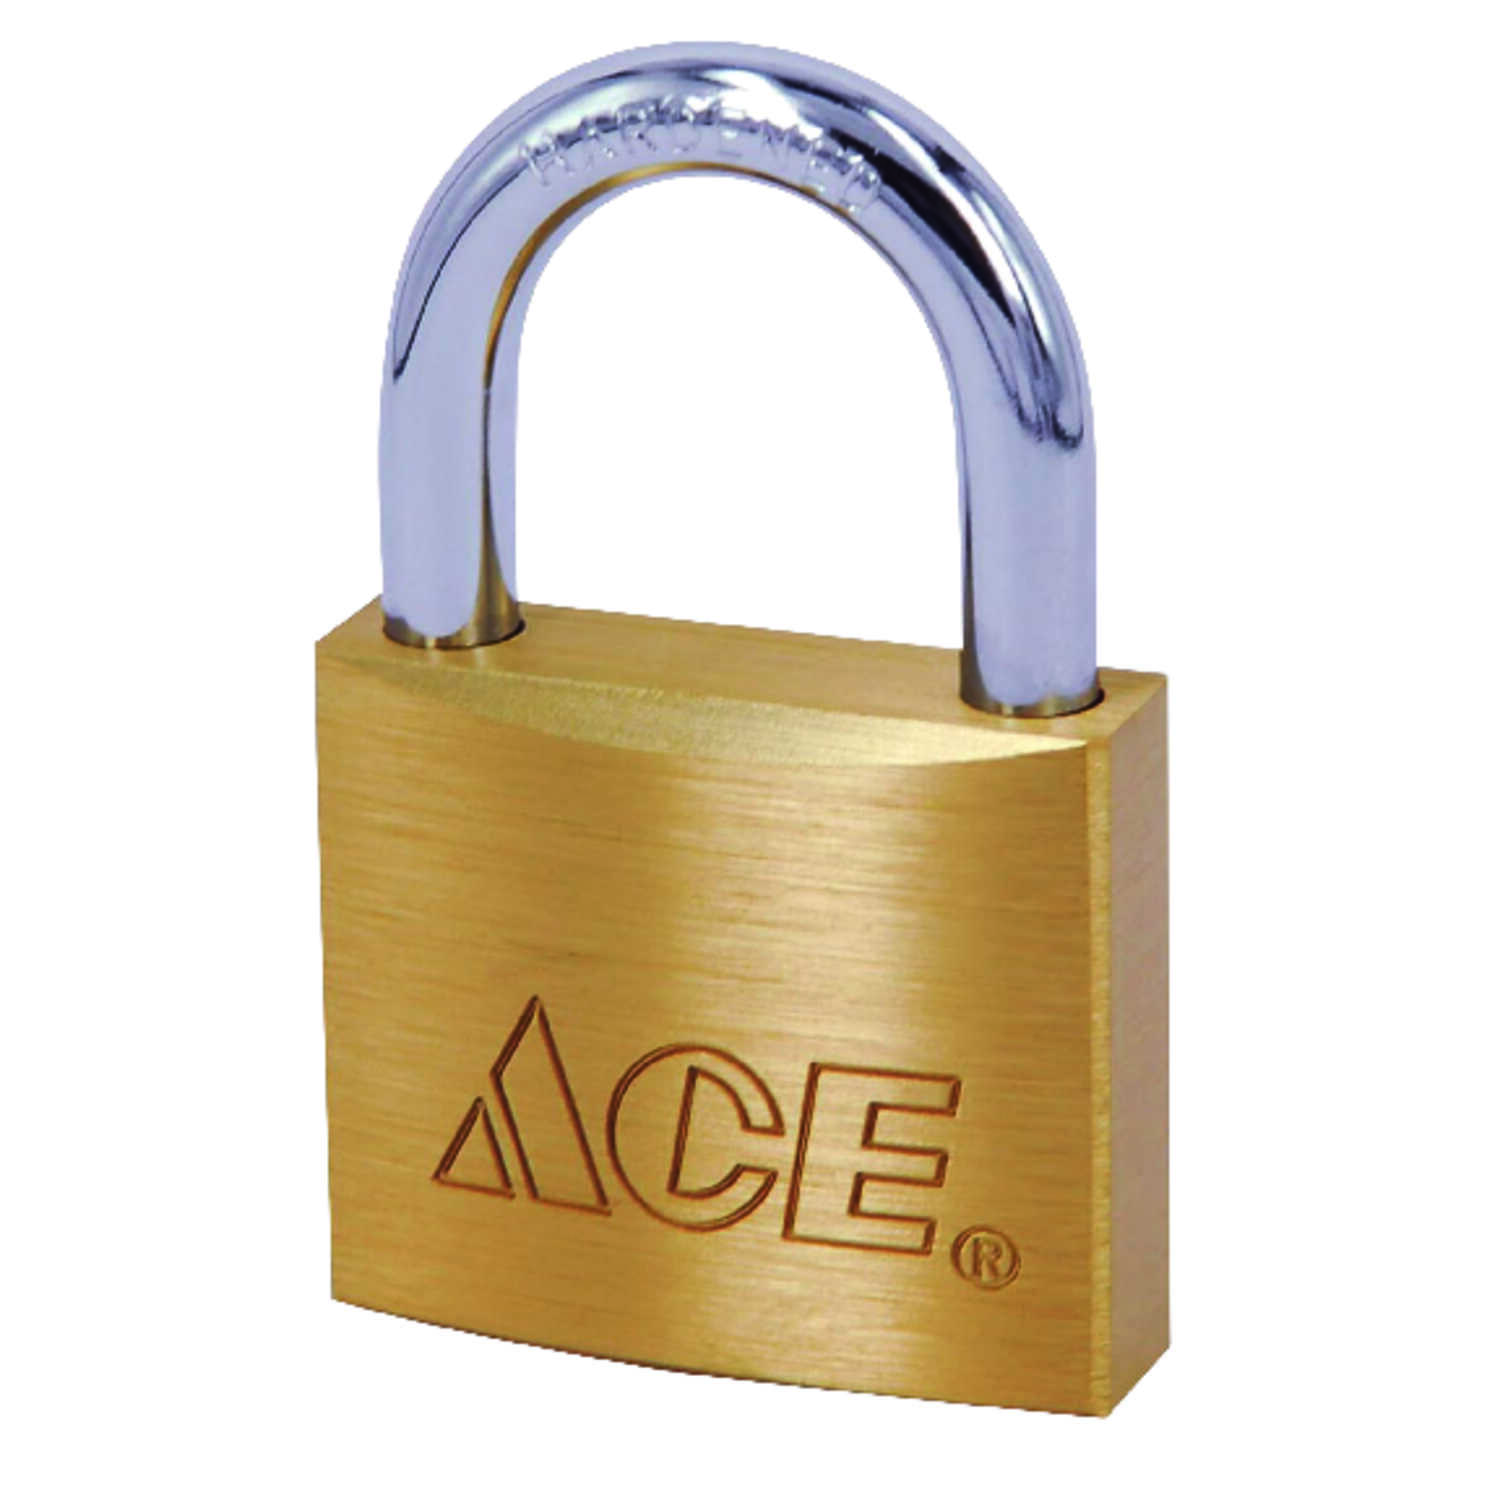 Ace  1-1/2 in. W x 1-5/16 in. H x 17/32 in. L Brass  Double Locking  Padlock  2 pk Keyed Alike